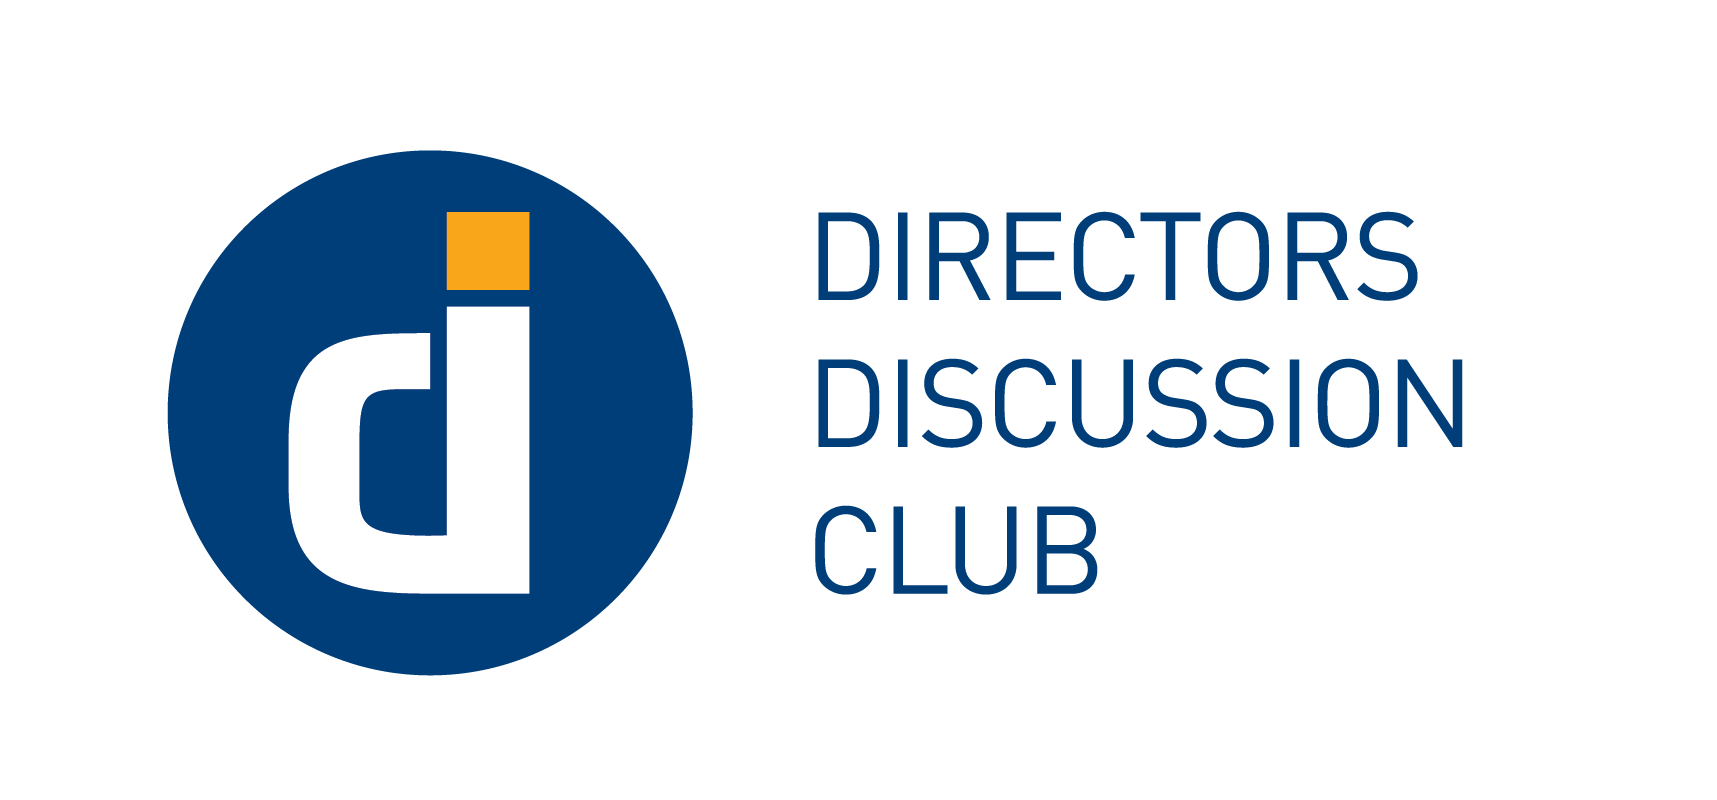 Stanton Chase Moscow Supports the Directors Discussion Club Cover Image